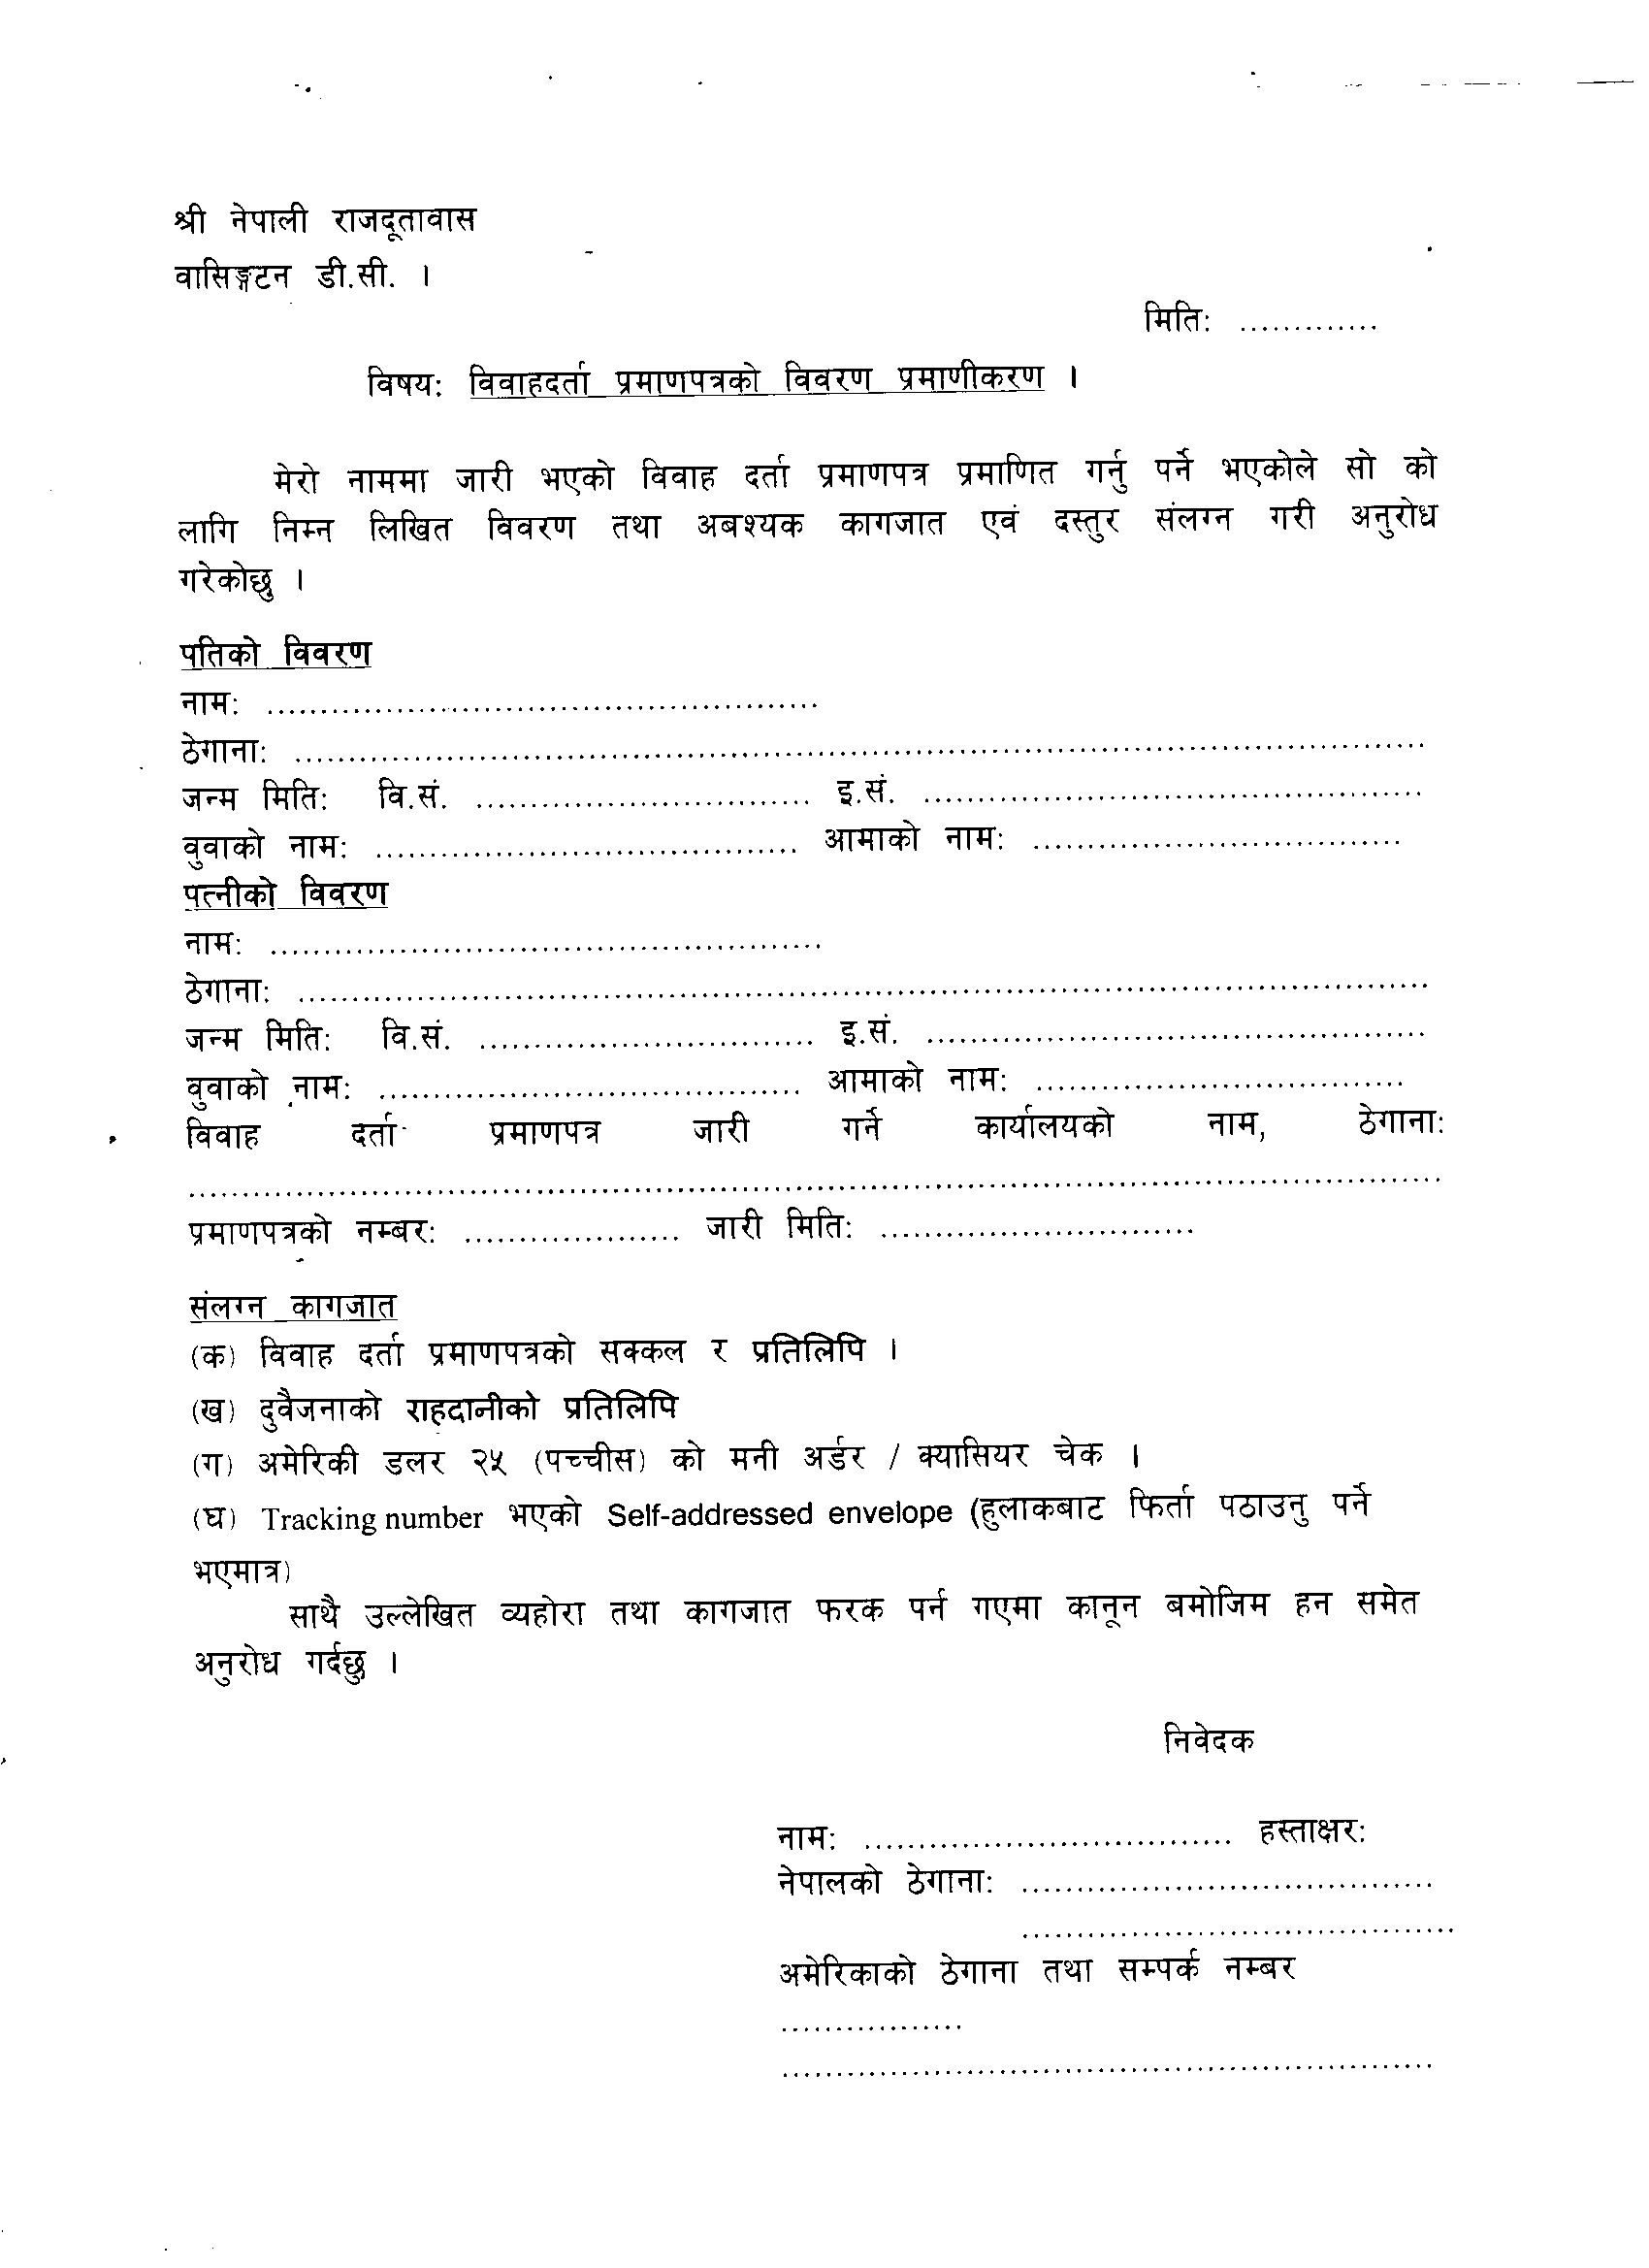 Marriage certificate form download hyderabad gallery certificate marriage certificate form download hyderabad choice image marriage certificate form download hyderabad images certificate marriage certificate xflitez Gallery